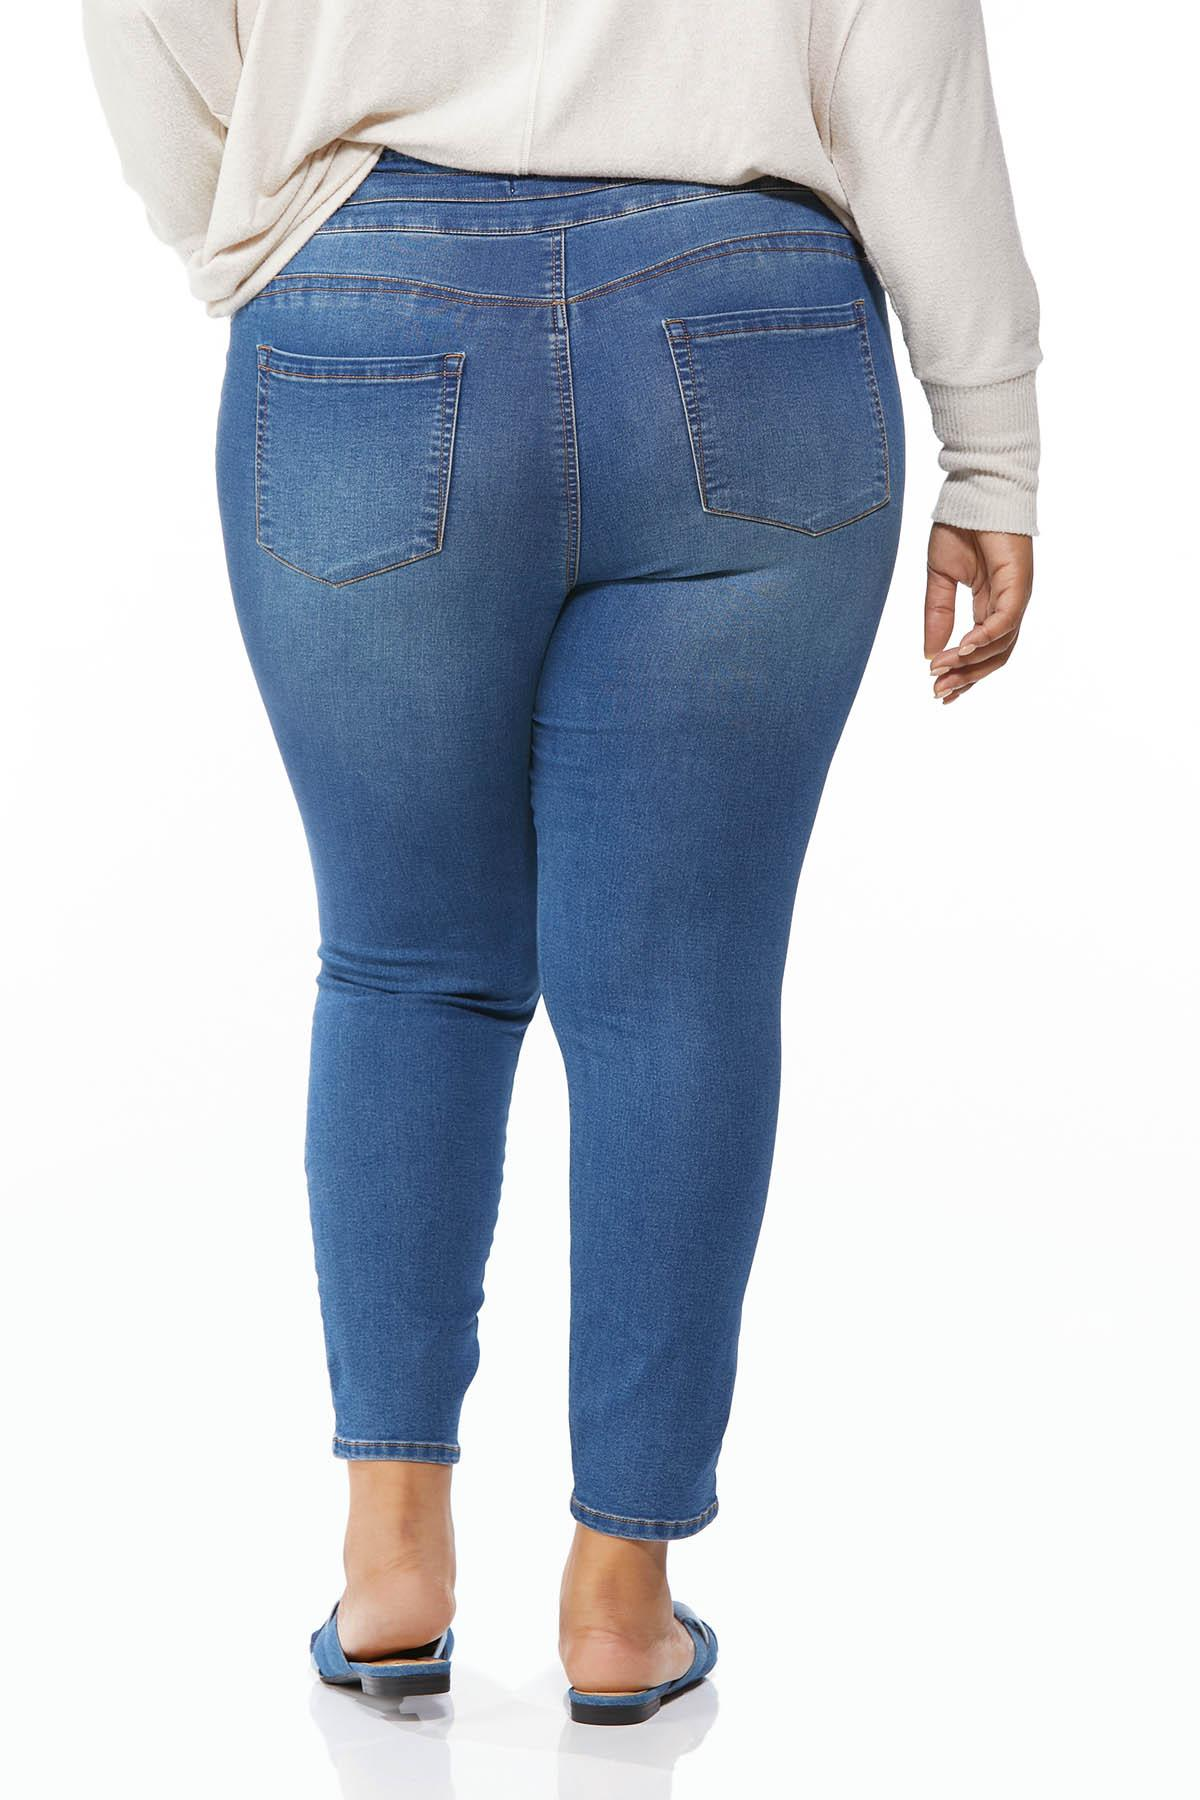 Plus Size Pull-On Jeggings (Item #44694892)